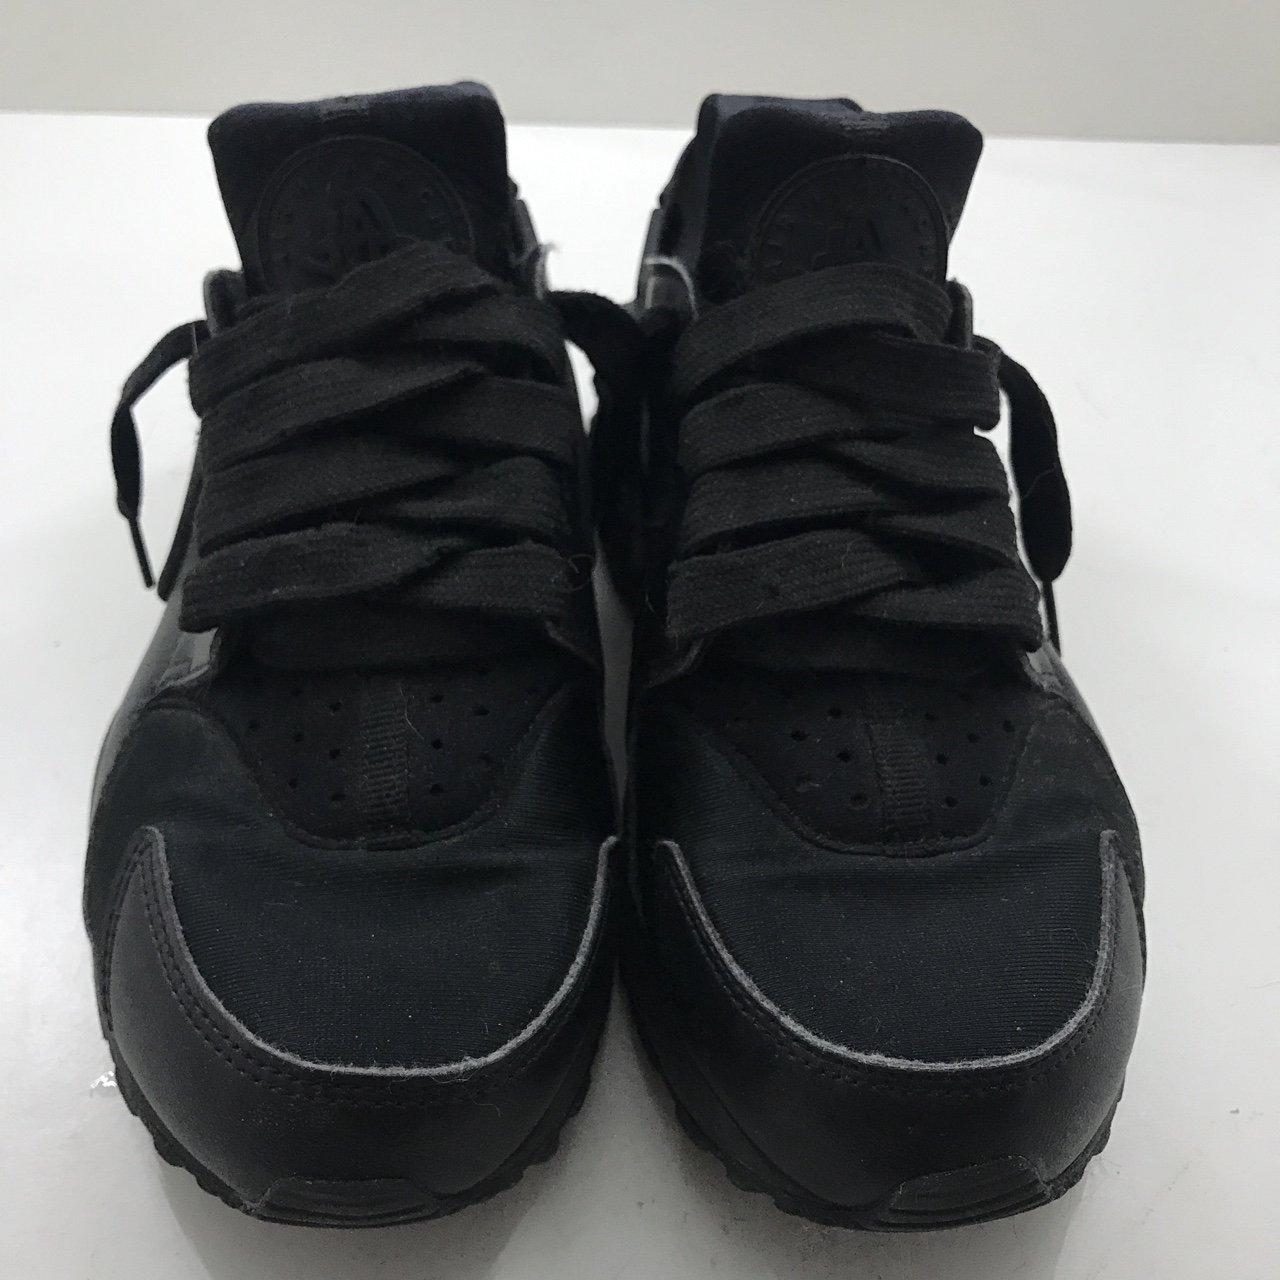 20fe47b0f4f0 PRICE DROPPED  Nike women s Air Huaraches- all black. These - Depop